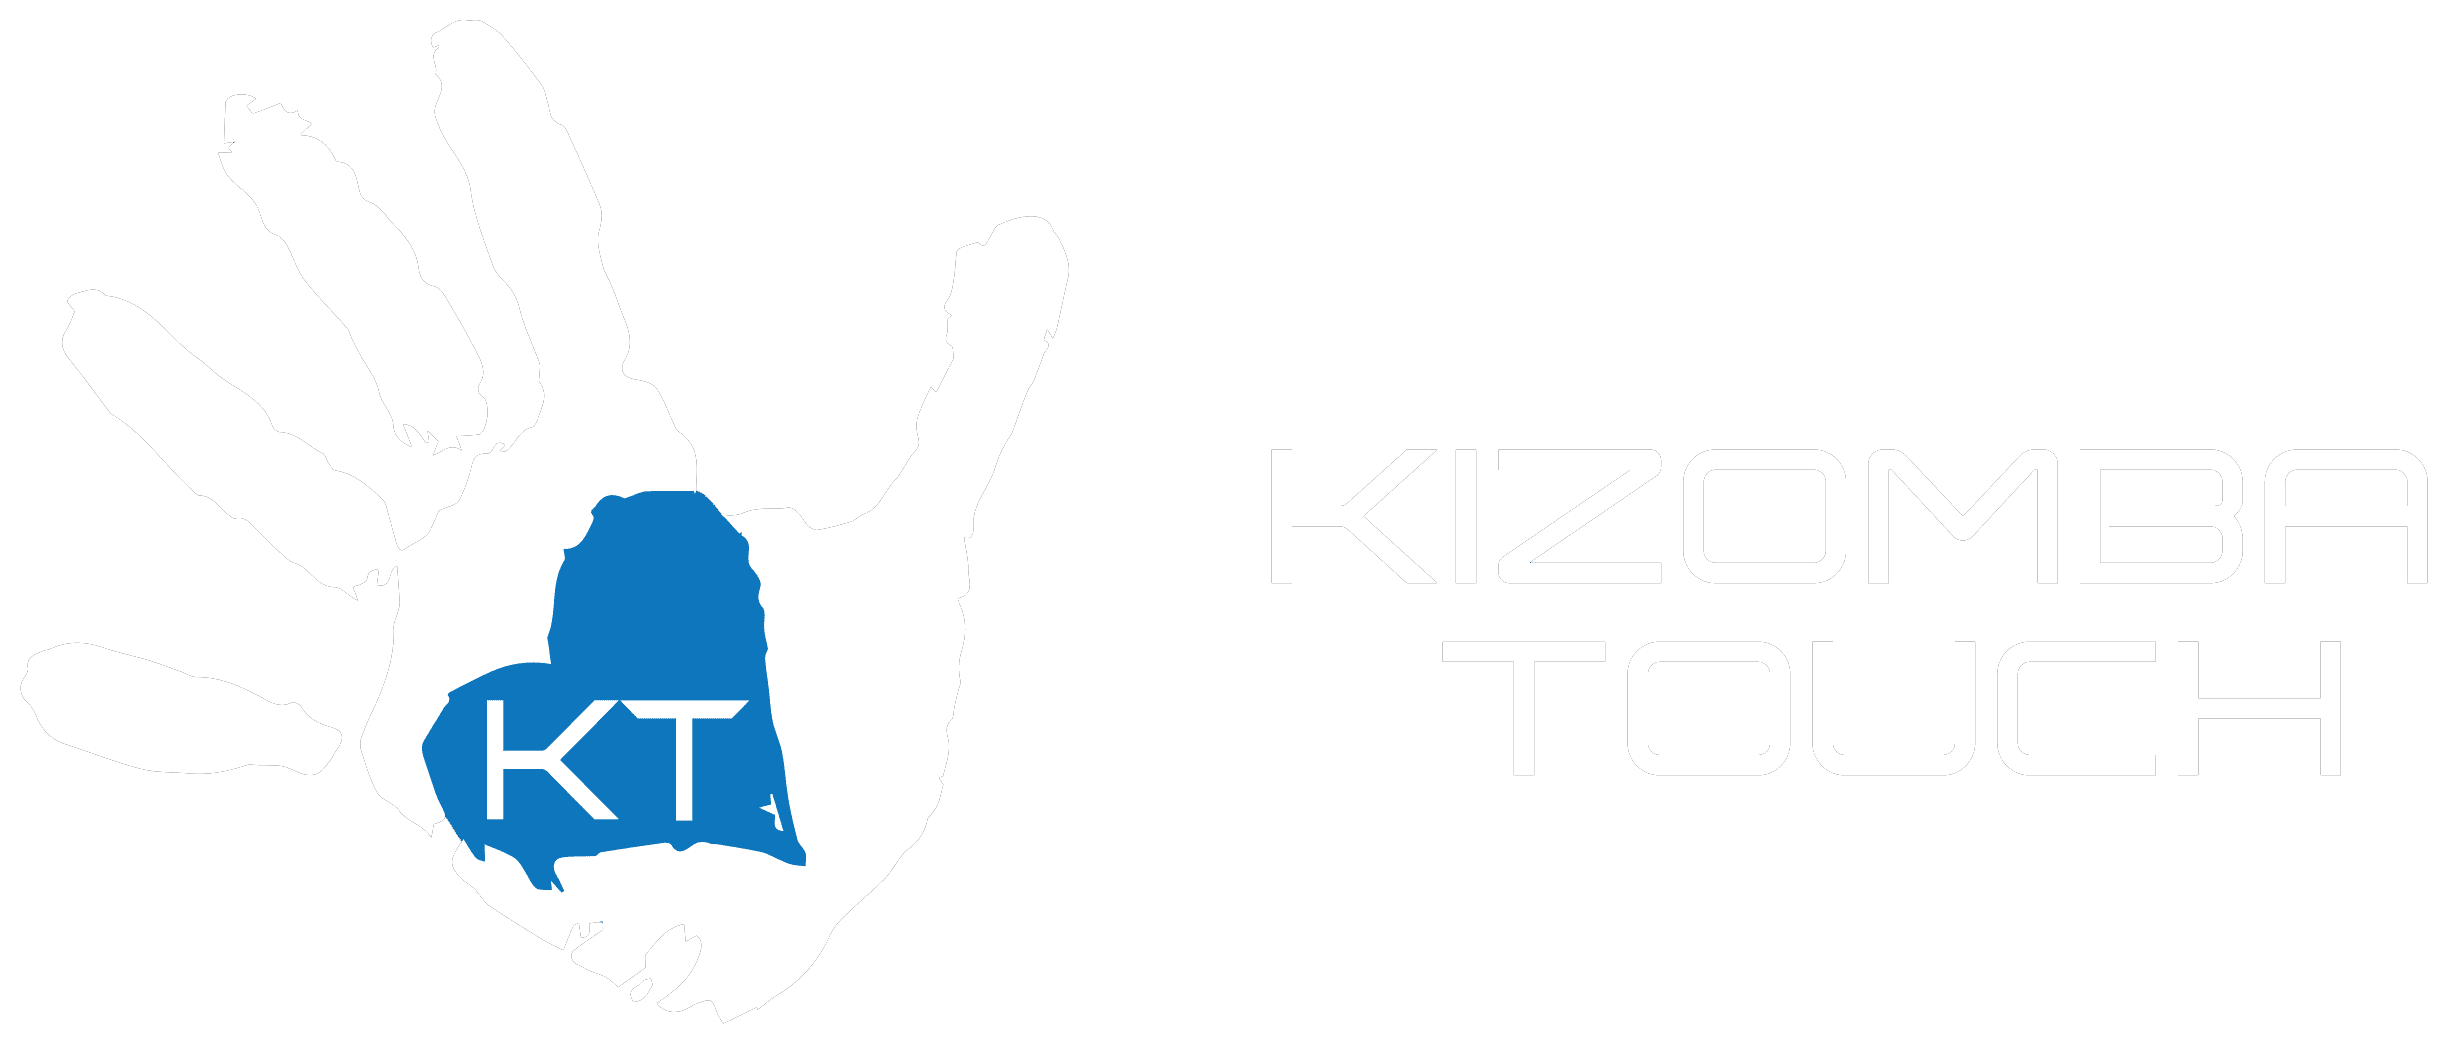 KIZOMBA, URBAN KIZ & KIZOMBA FUSION CLASSES, WORKSHOPS, EVENTS, DJ'S, PHOTO & VIDEO